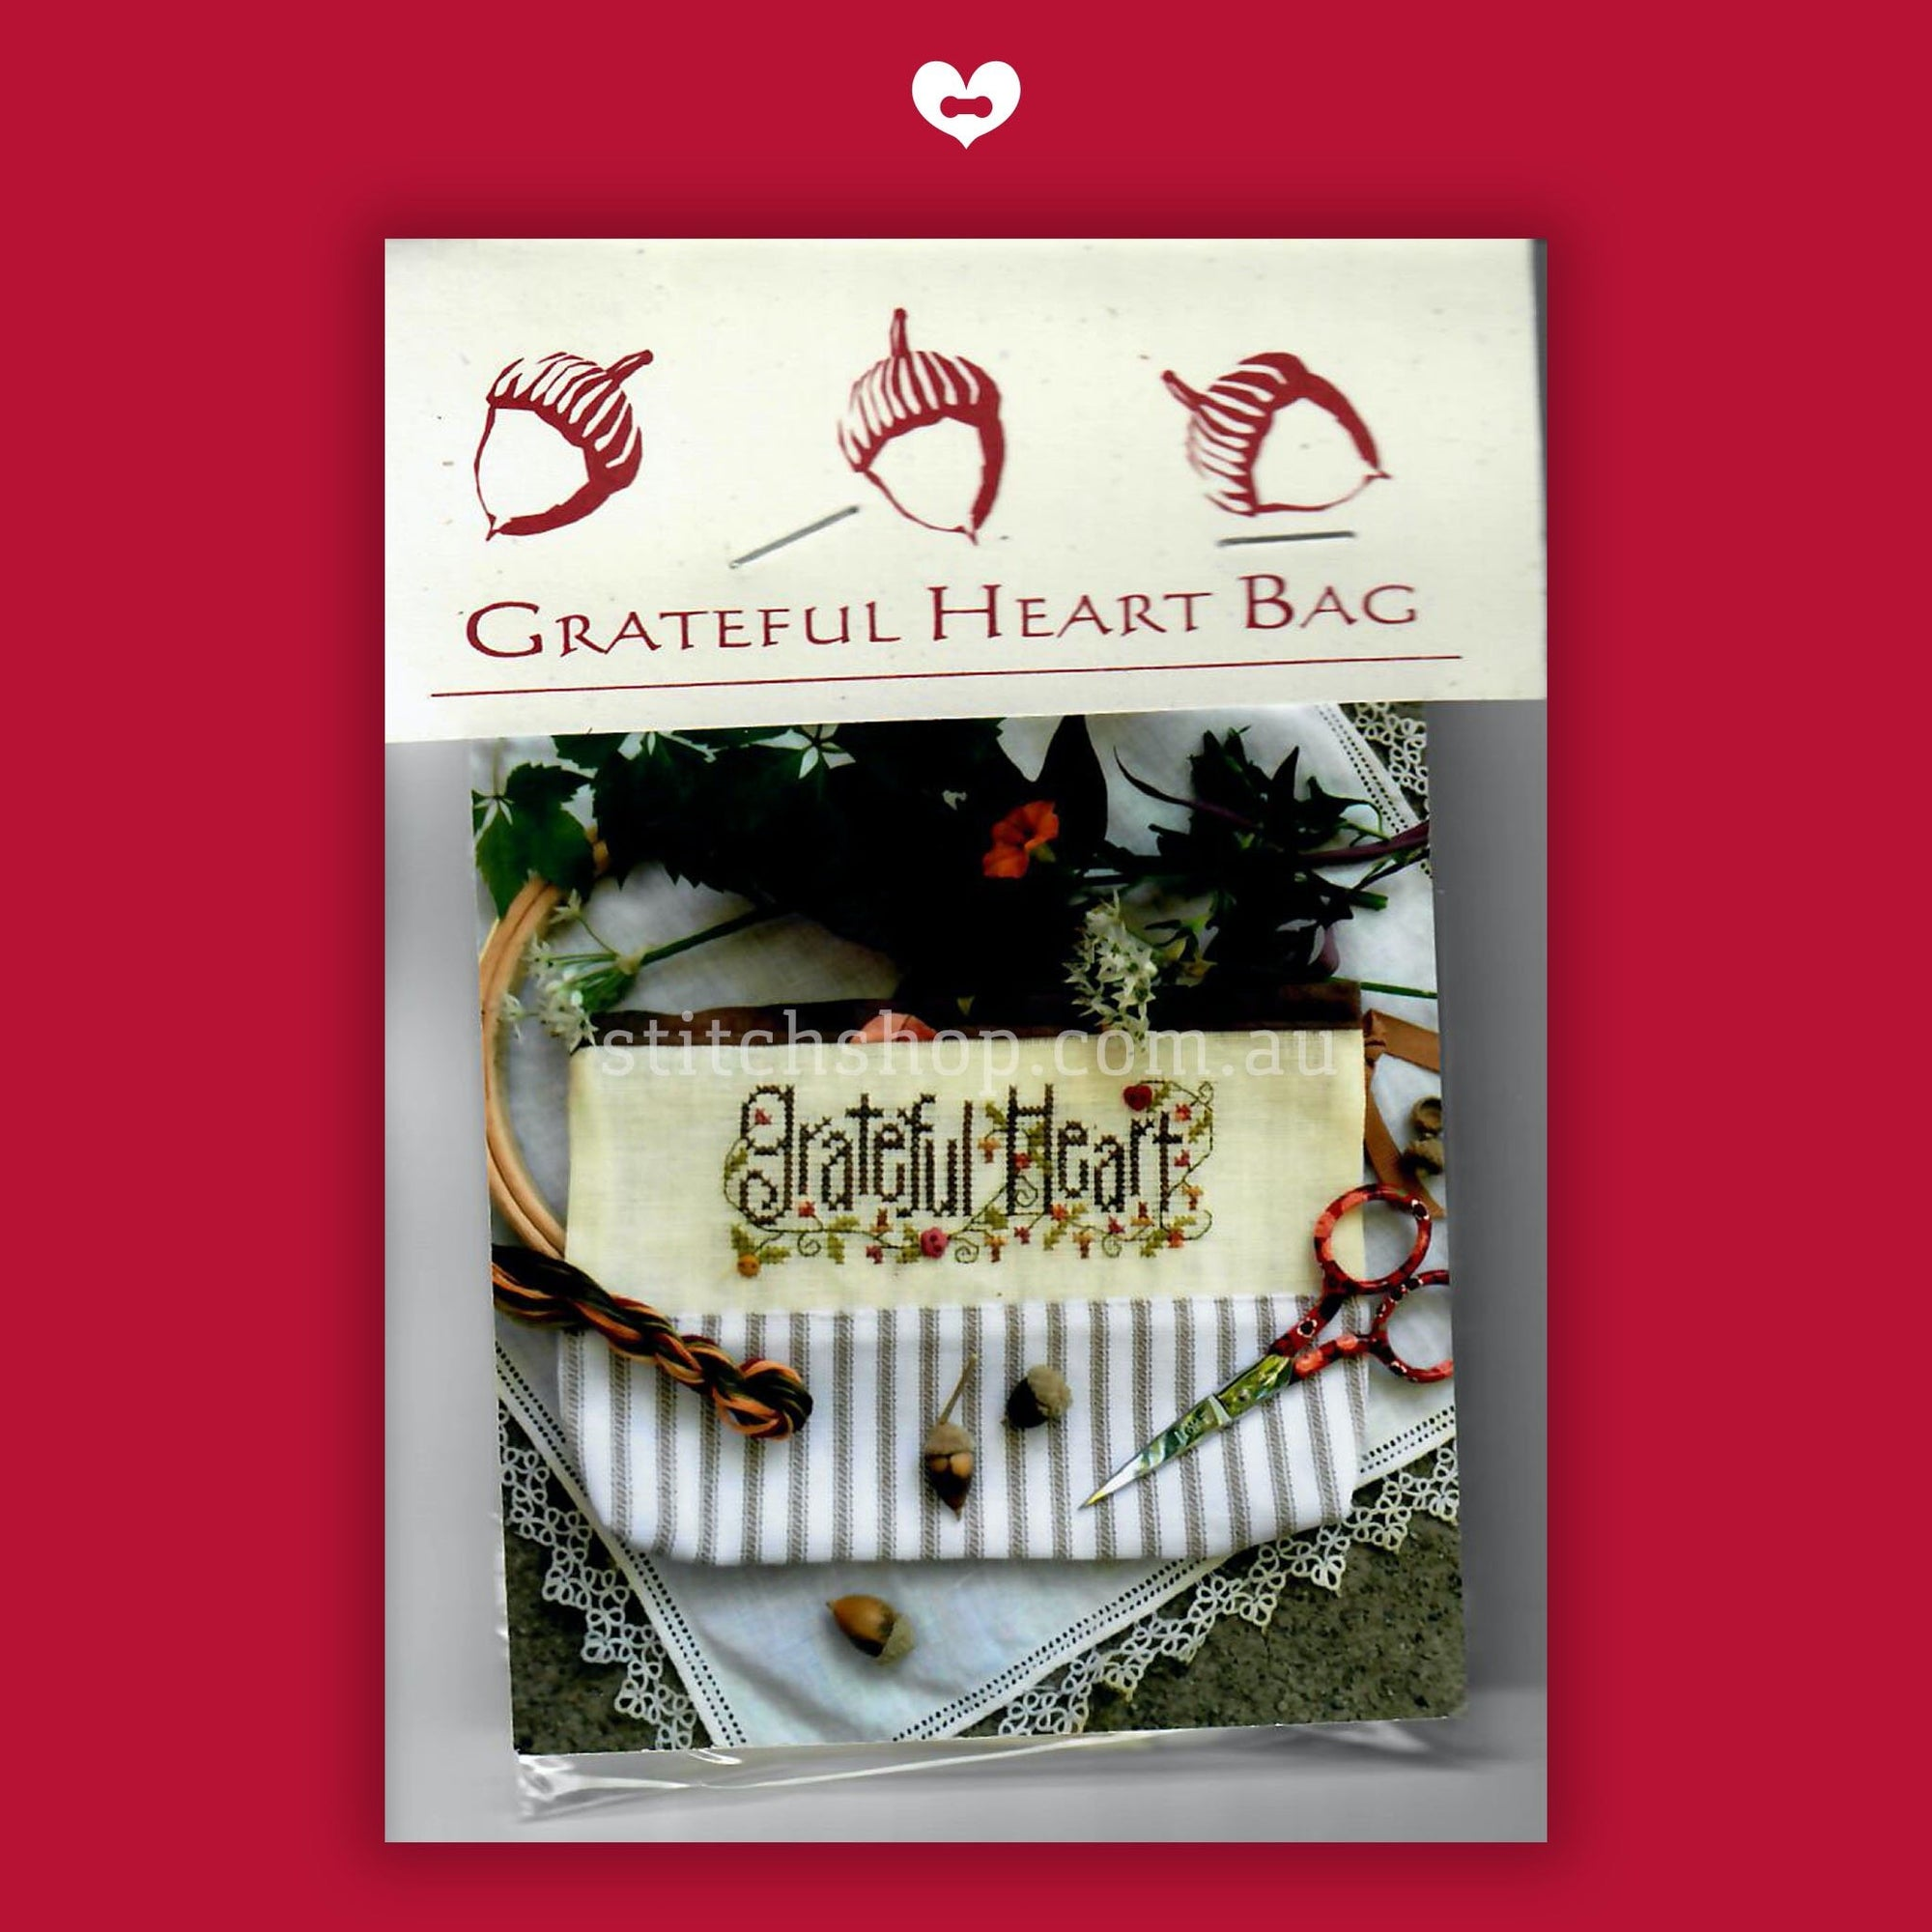 Grateful Heart Bag